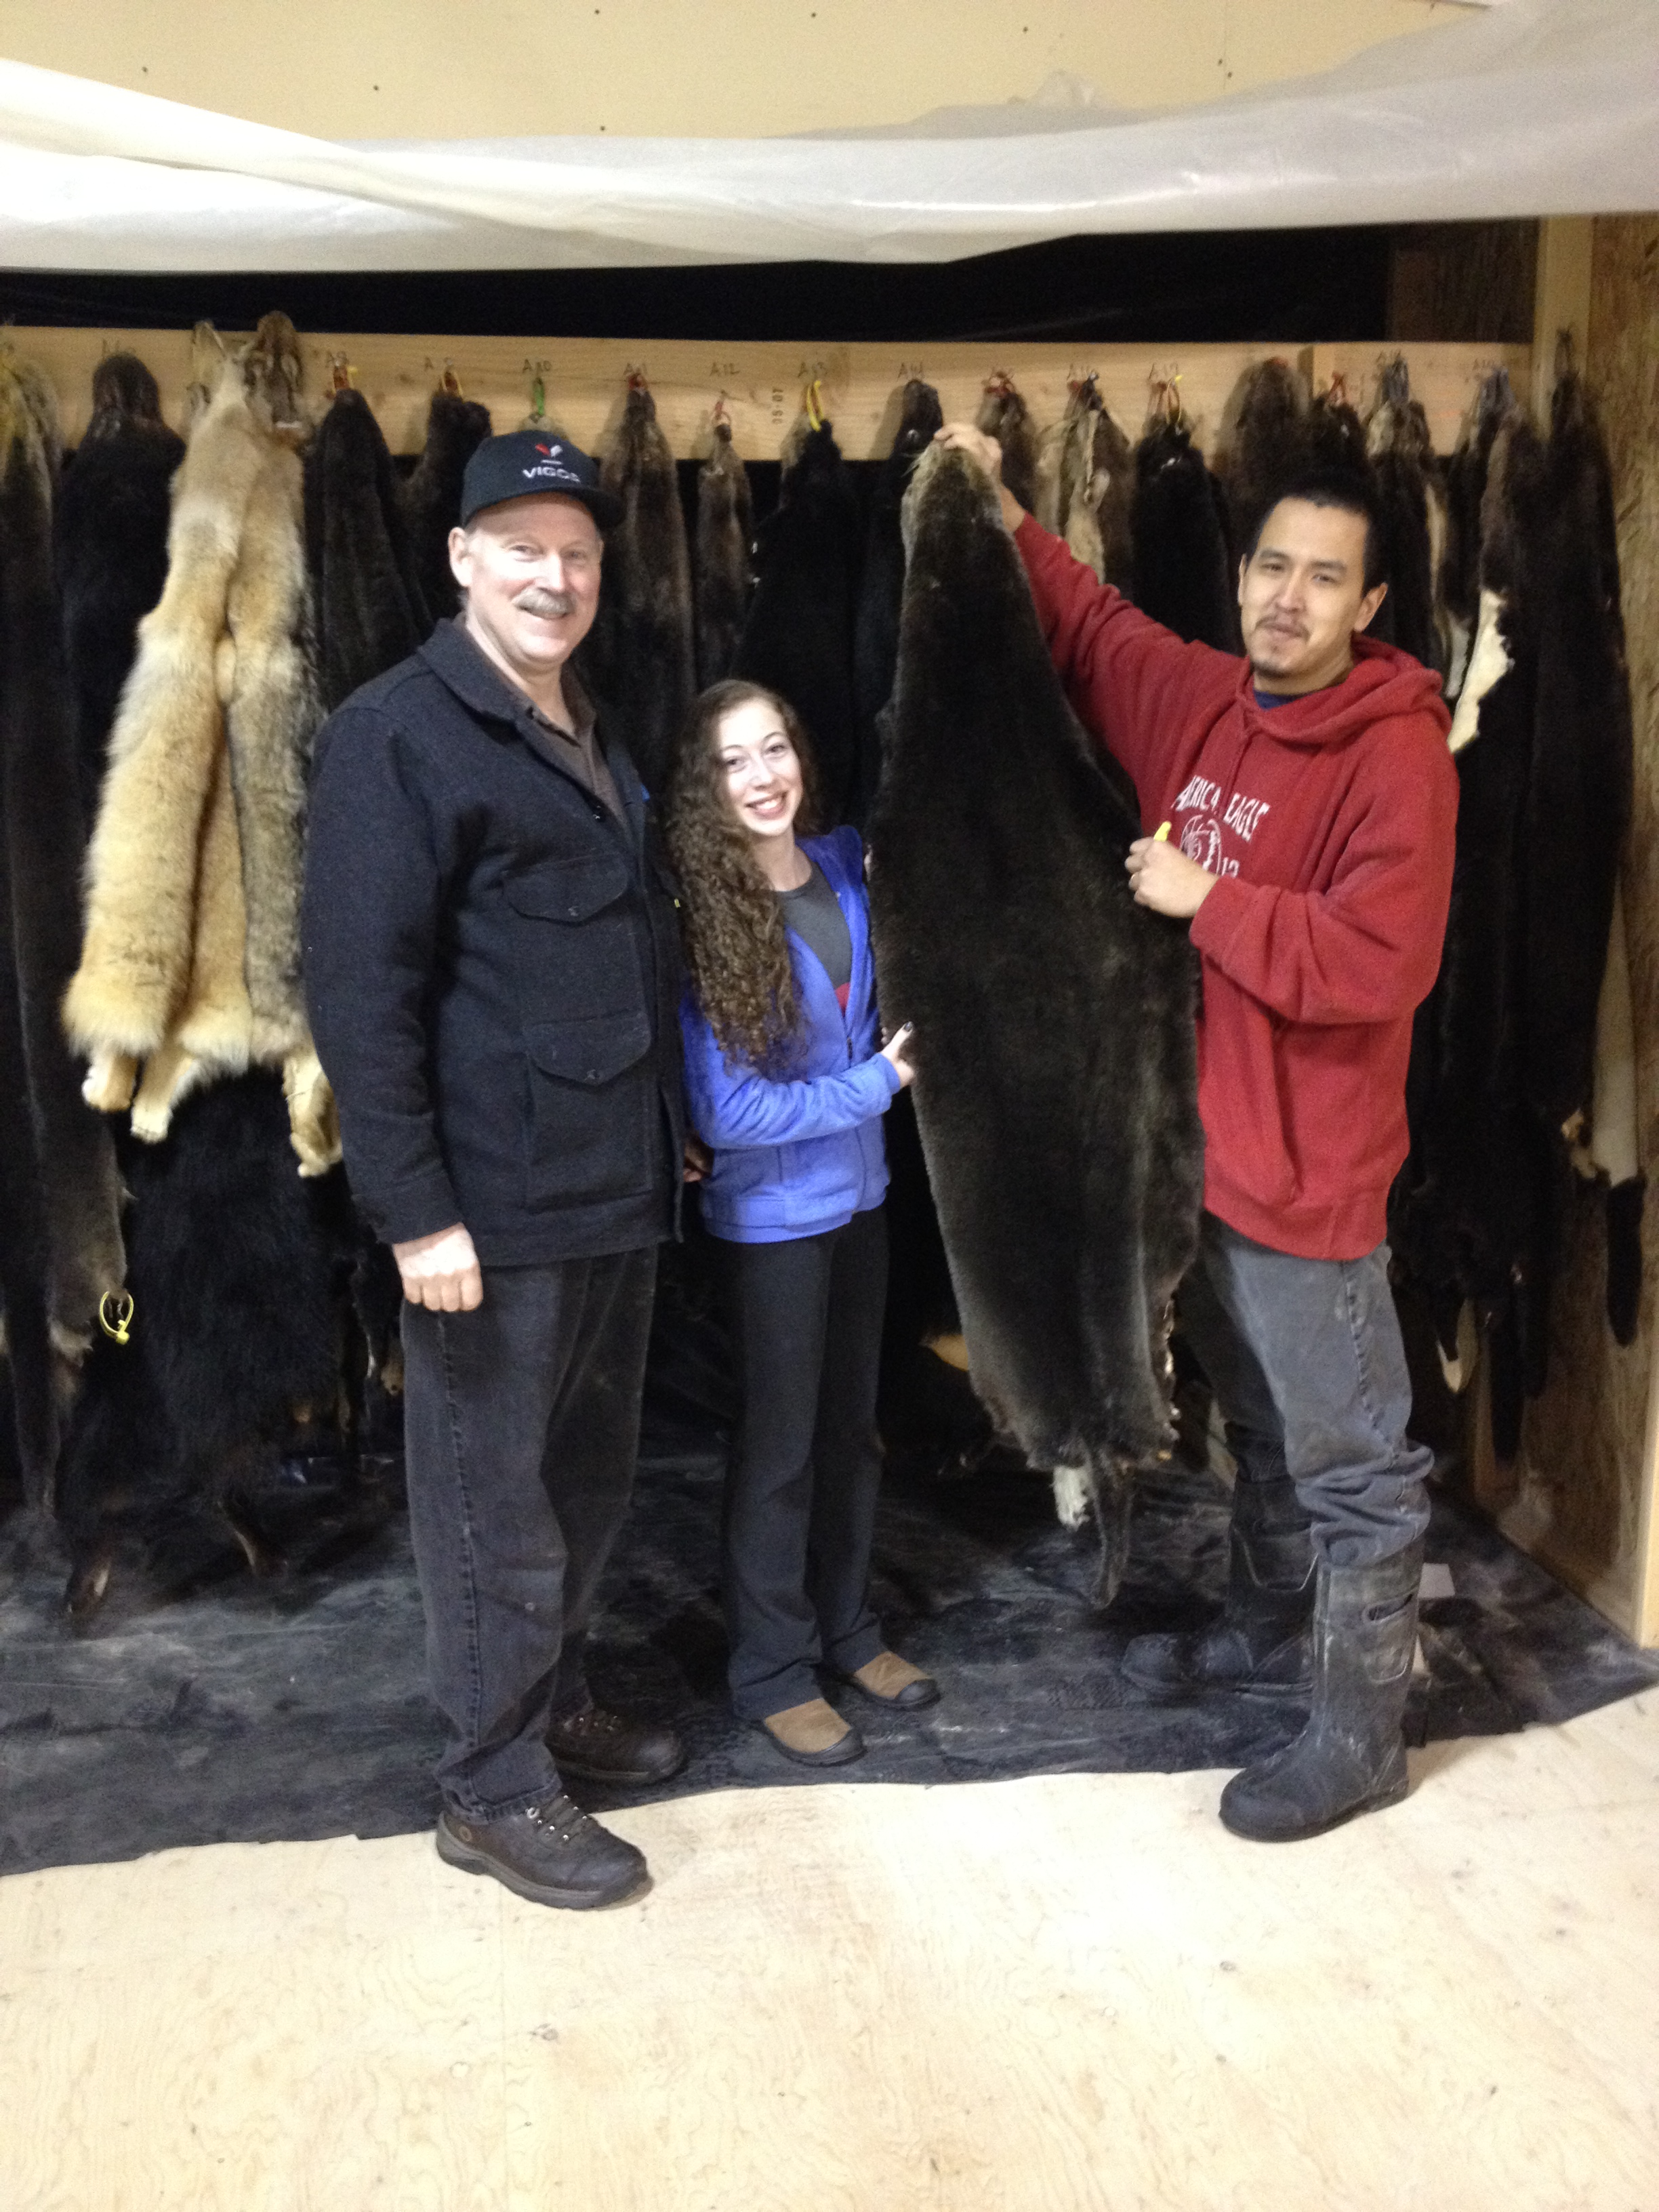 Russell James gives Senator Stedman and his daughter a tour of the Sitka Tribes tannery